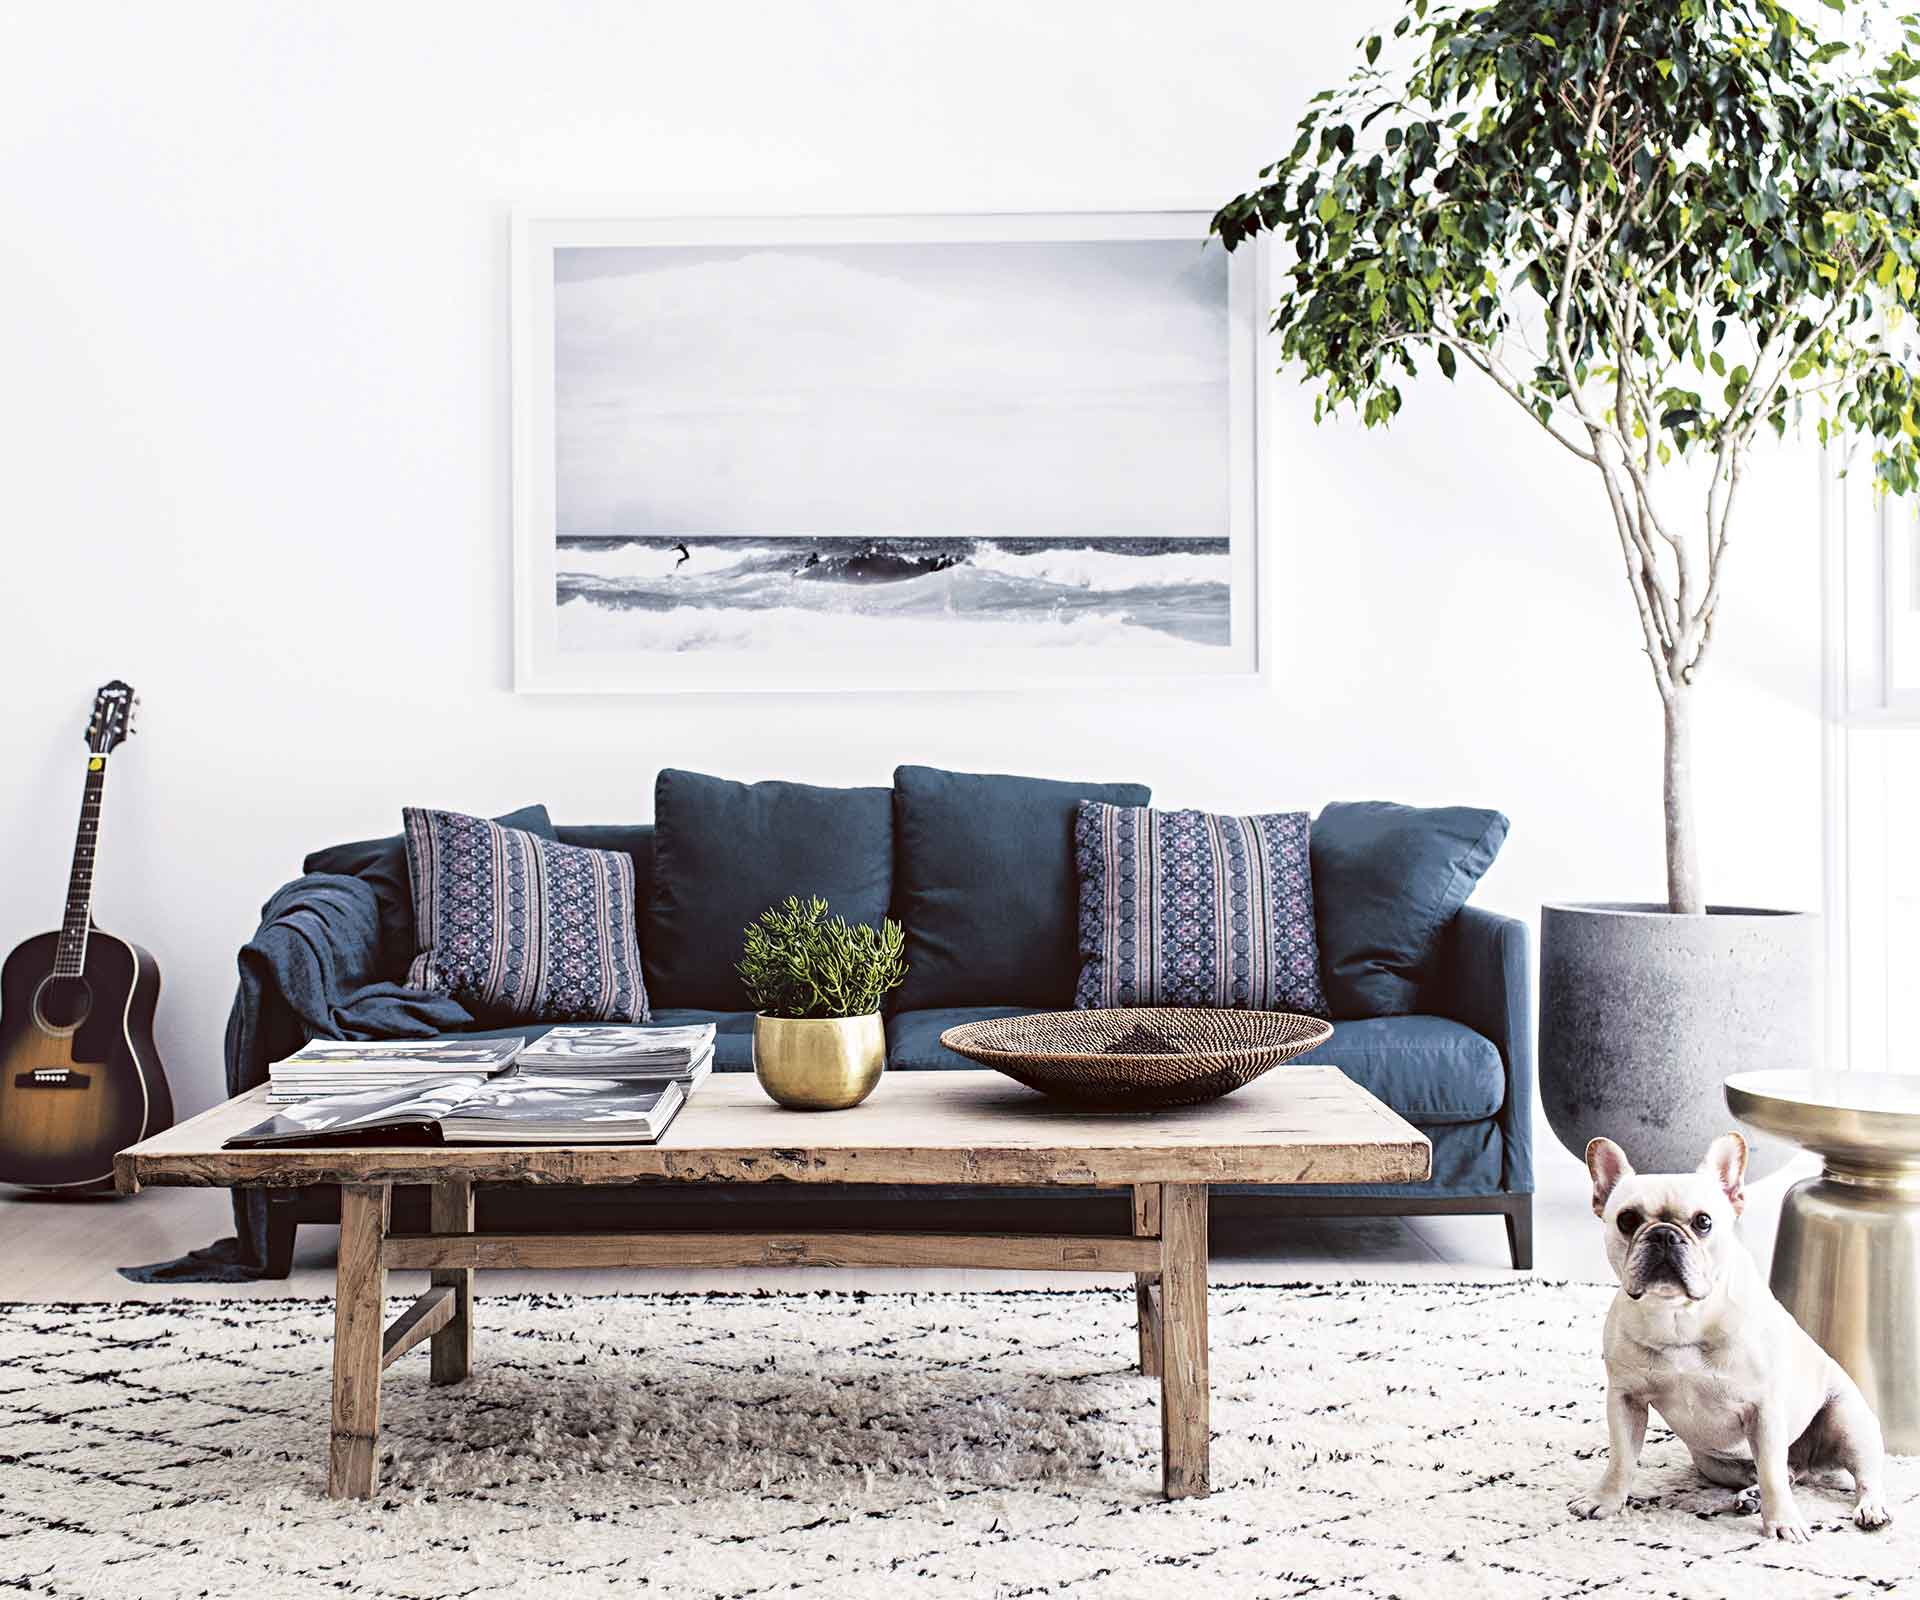 A bachelor pad in Manly that's full of clever ideas | Inside Out